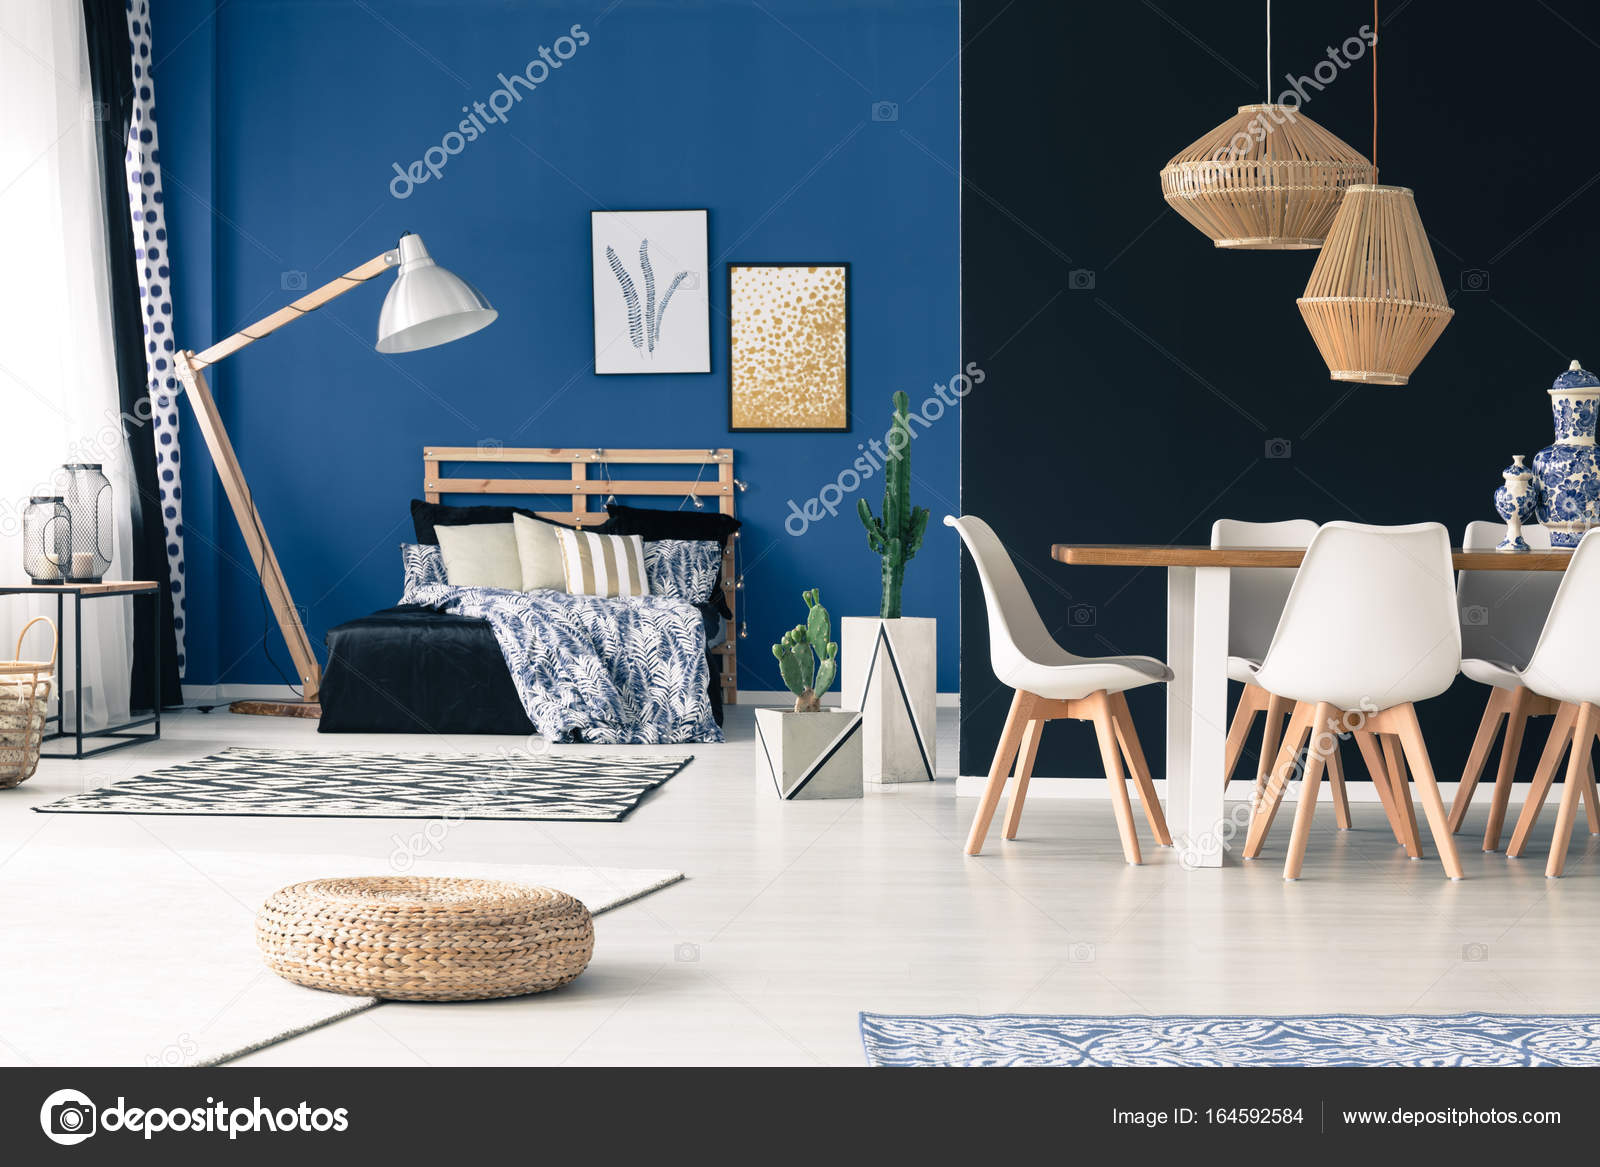 apartment with bedroom communal table wooden furniture deep cyan walls photo by photographeeeu